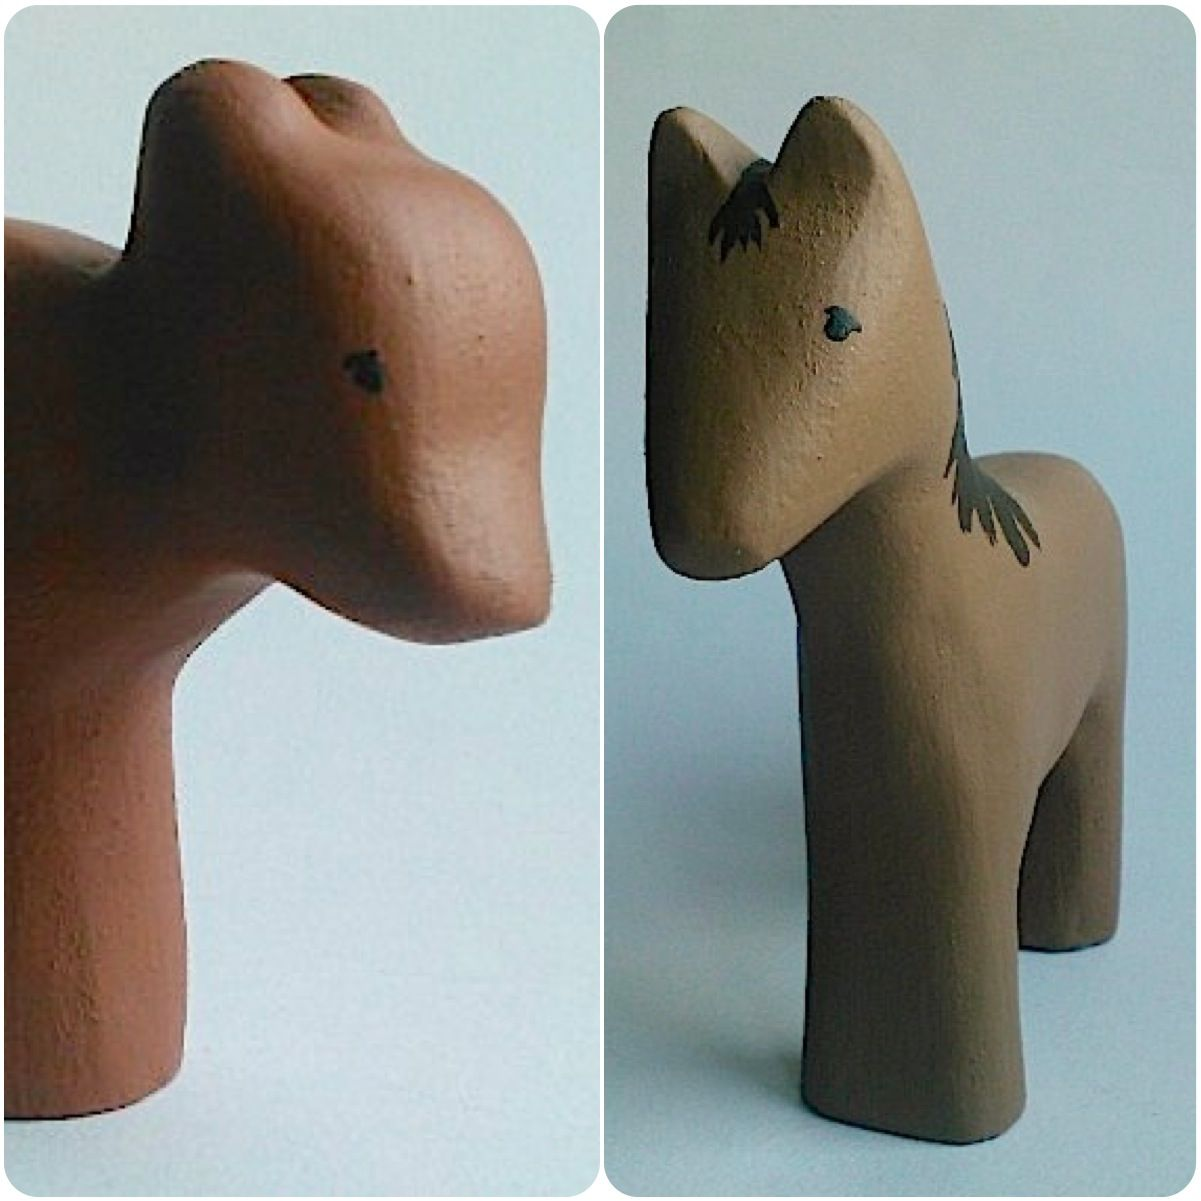 b for Bjørn: A bear and a horse